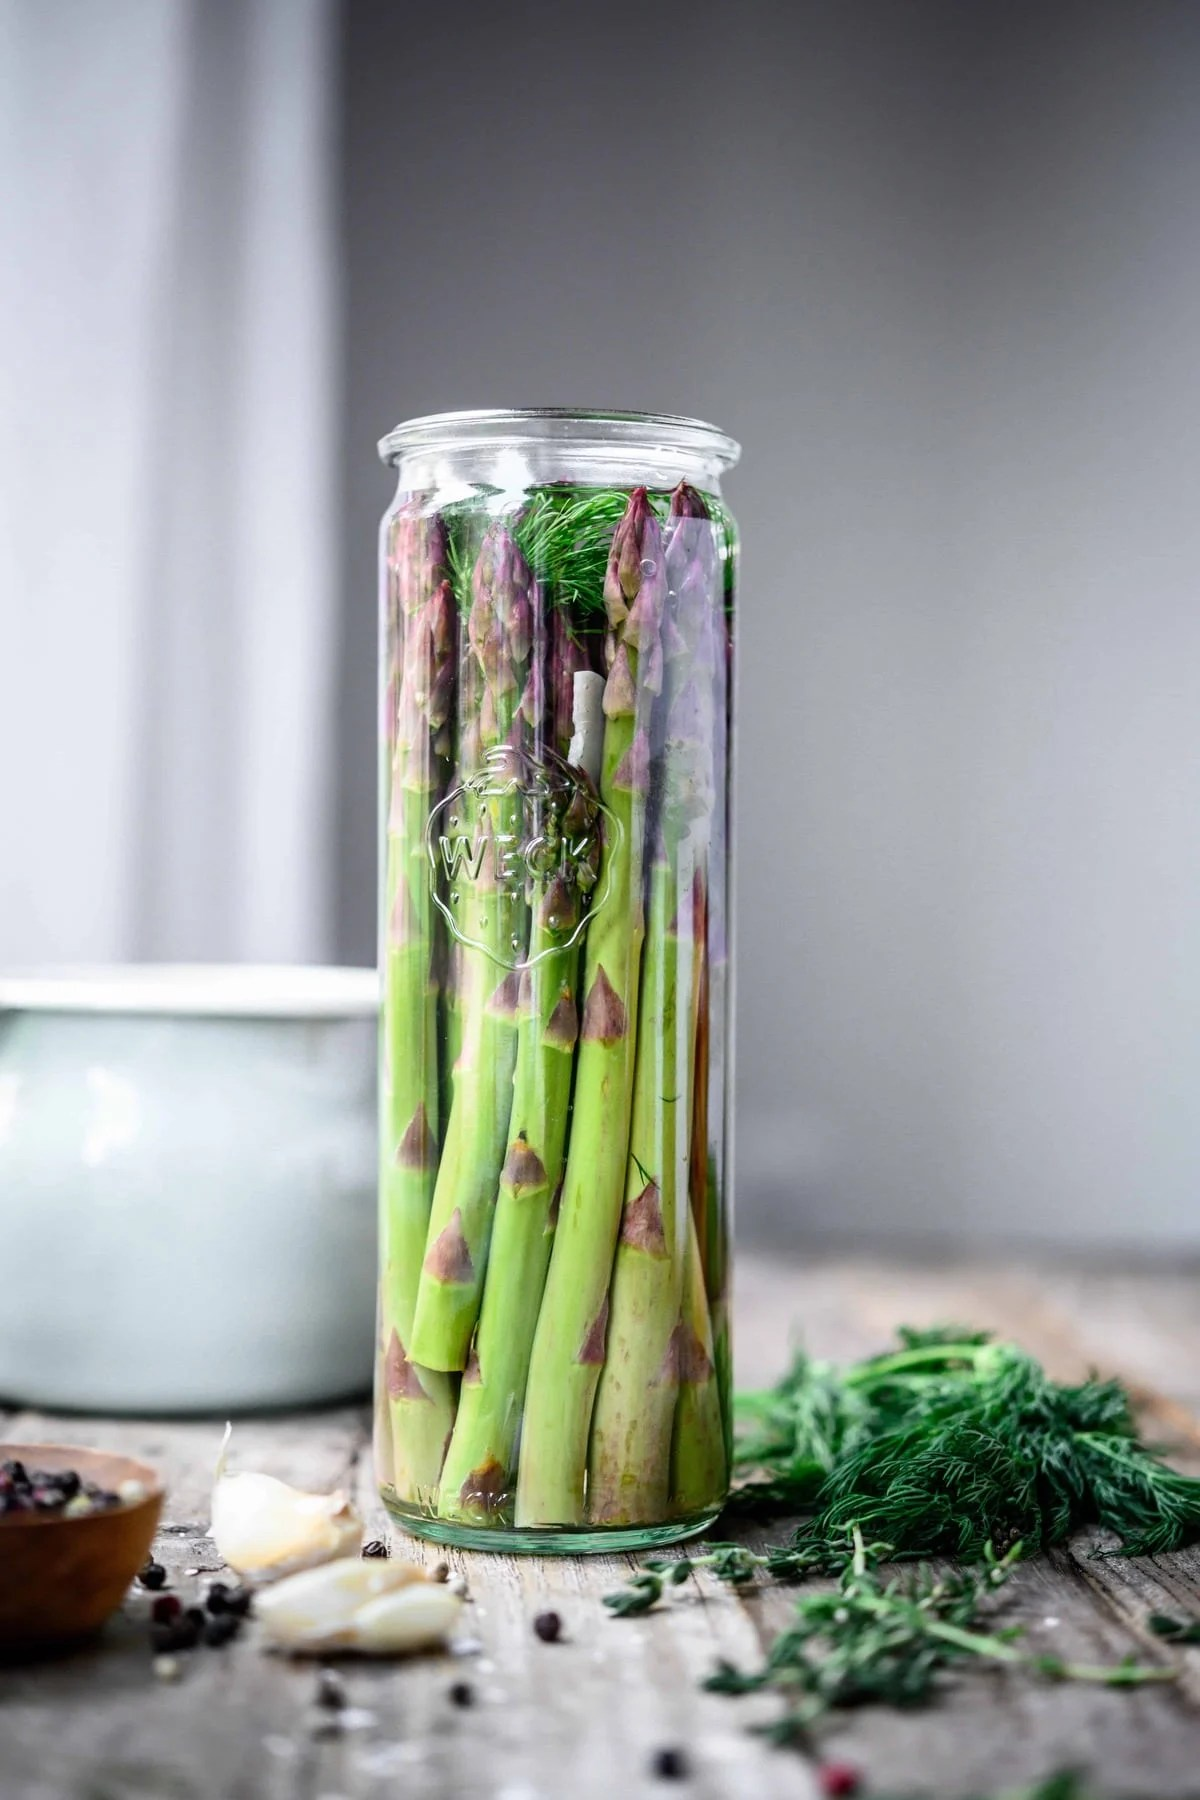 Side view of tall glass jar of dill pickled asparagus